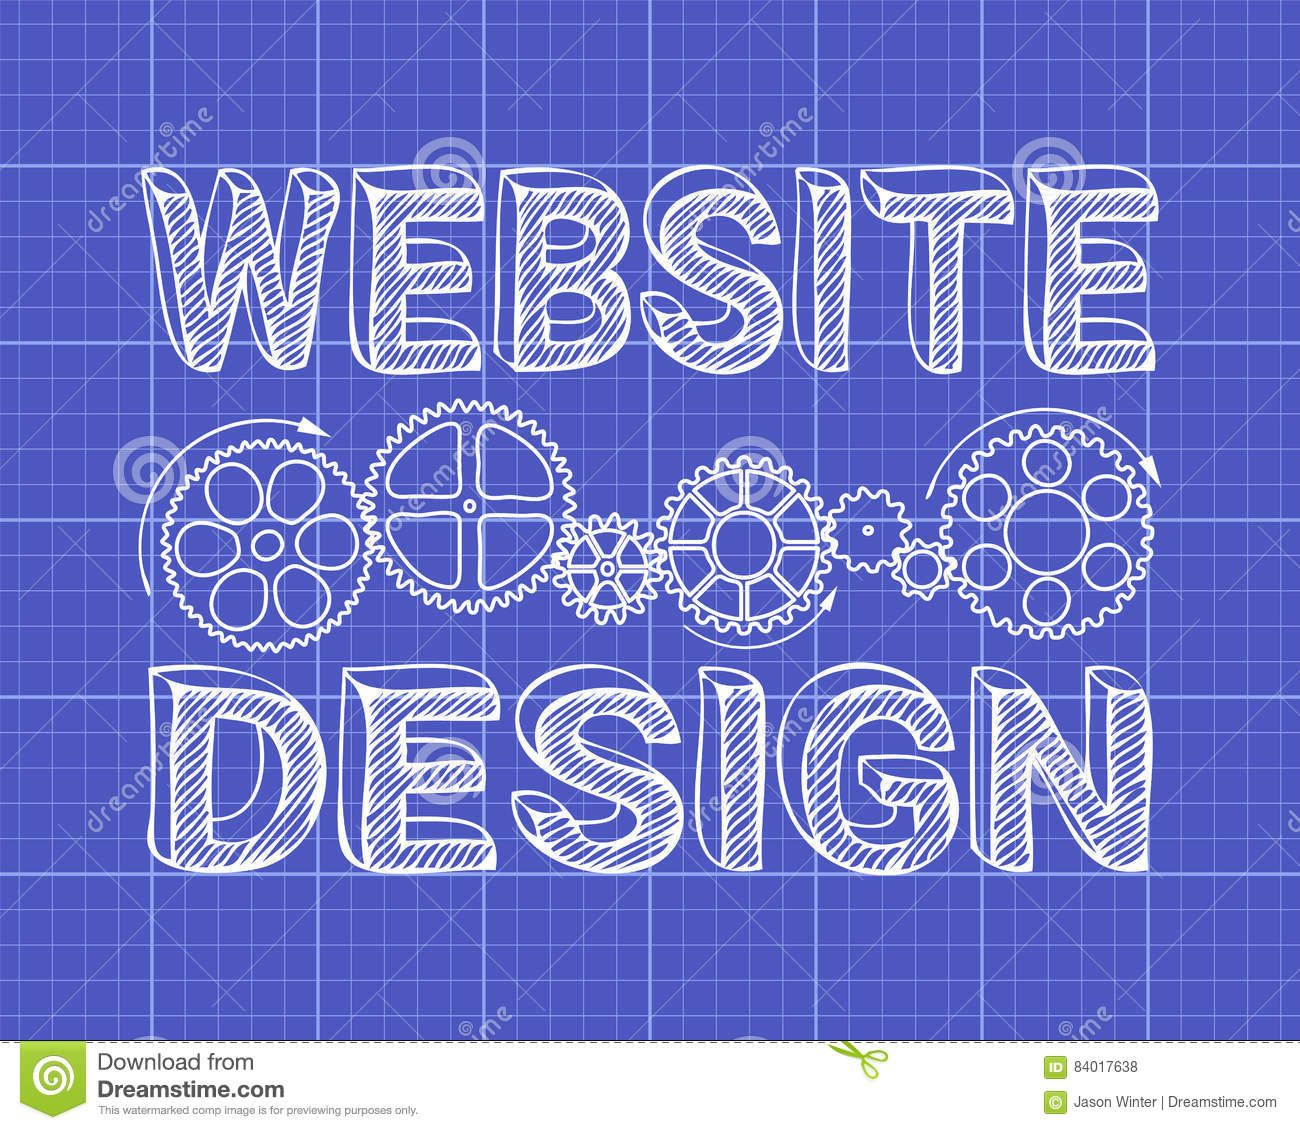 Website design blueprint stock vector illustration of internet download comp malvernweather Choice Image